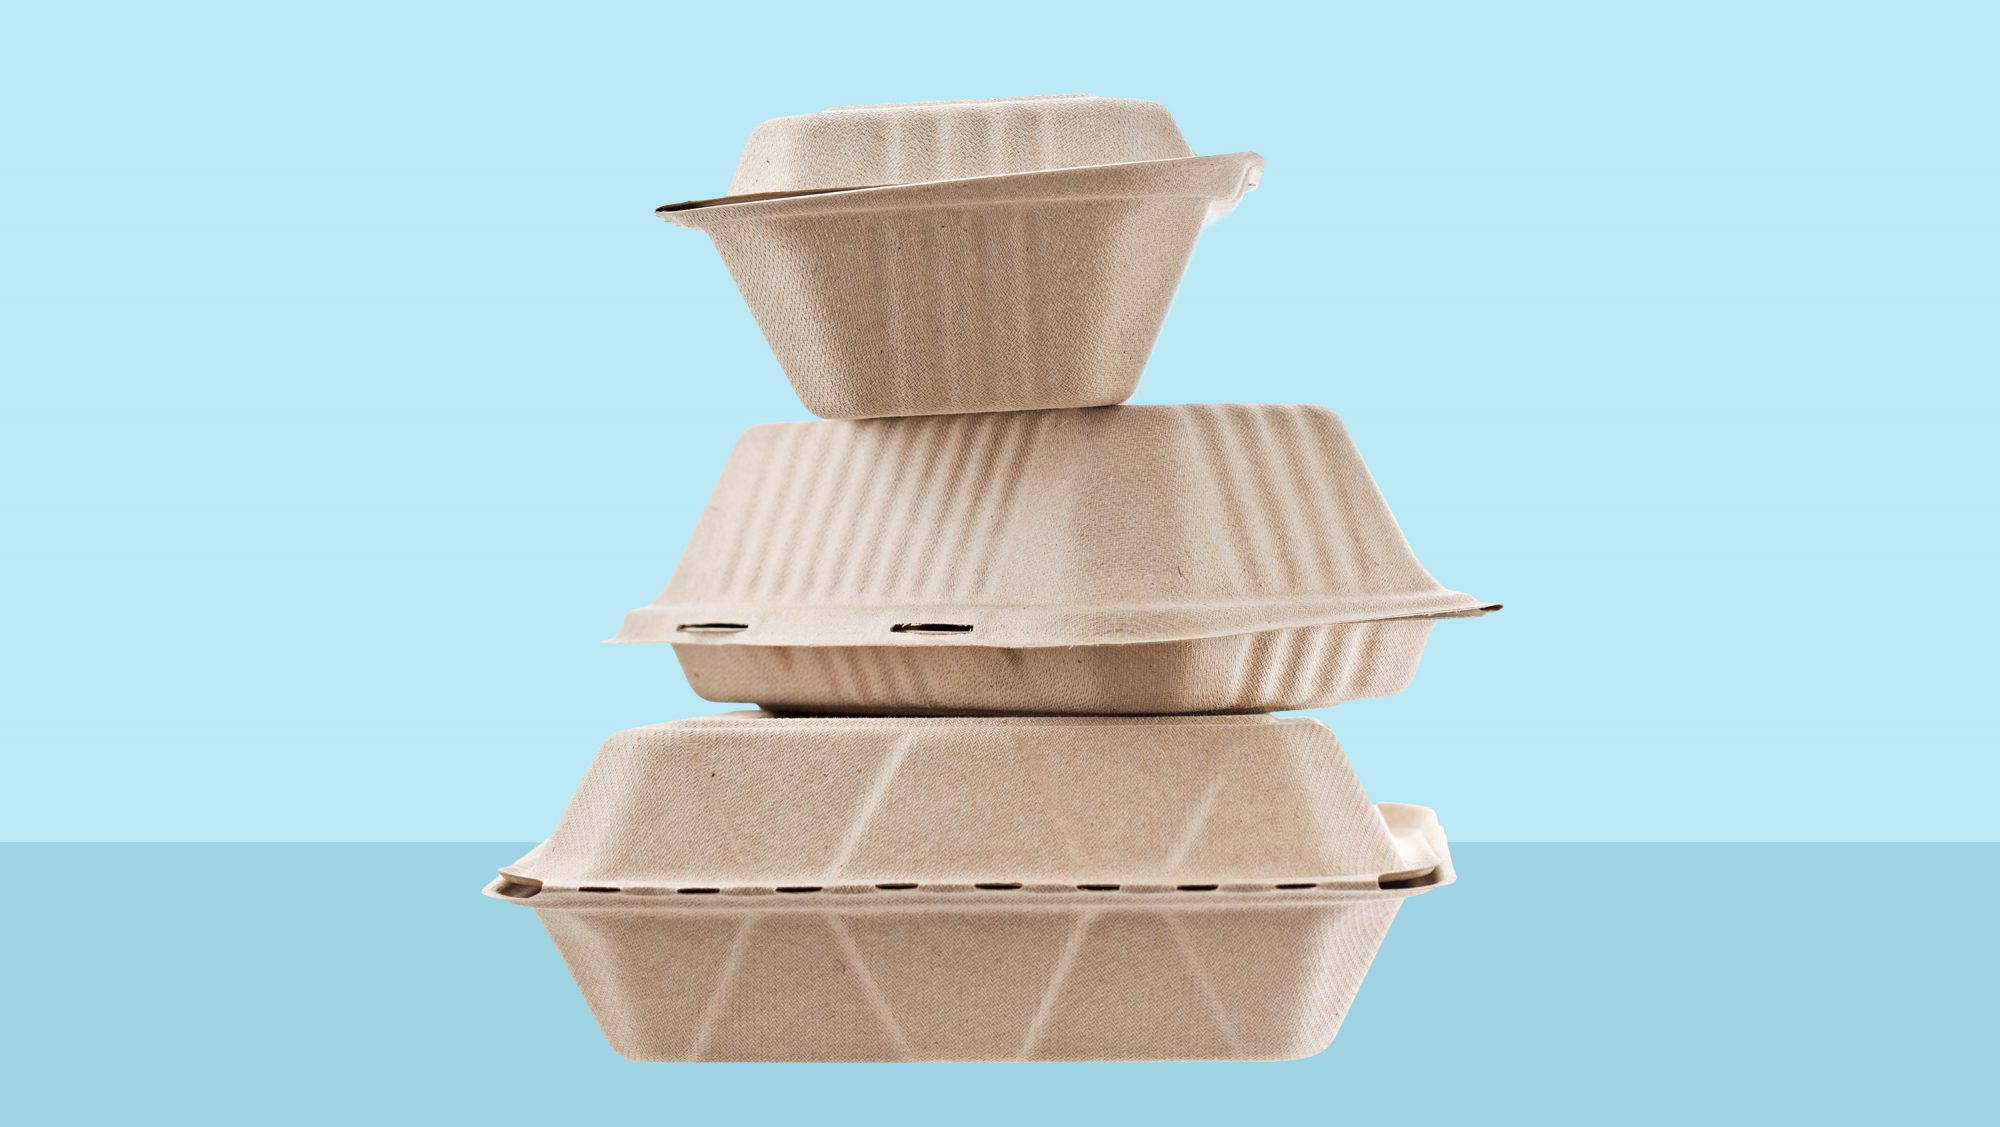 Takeout and Delivery Safety Tips During Coronavirus: cardboard takeout containers